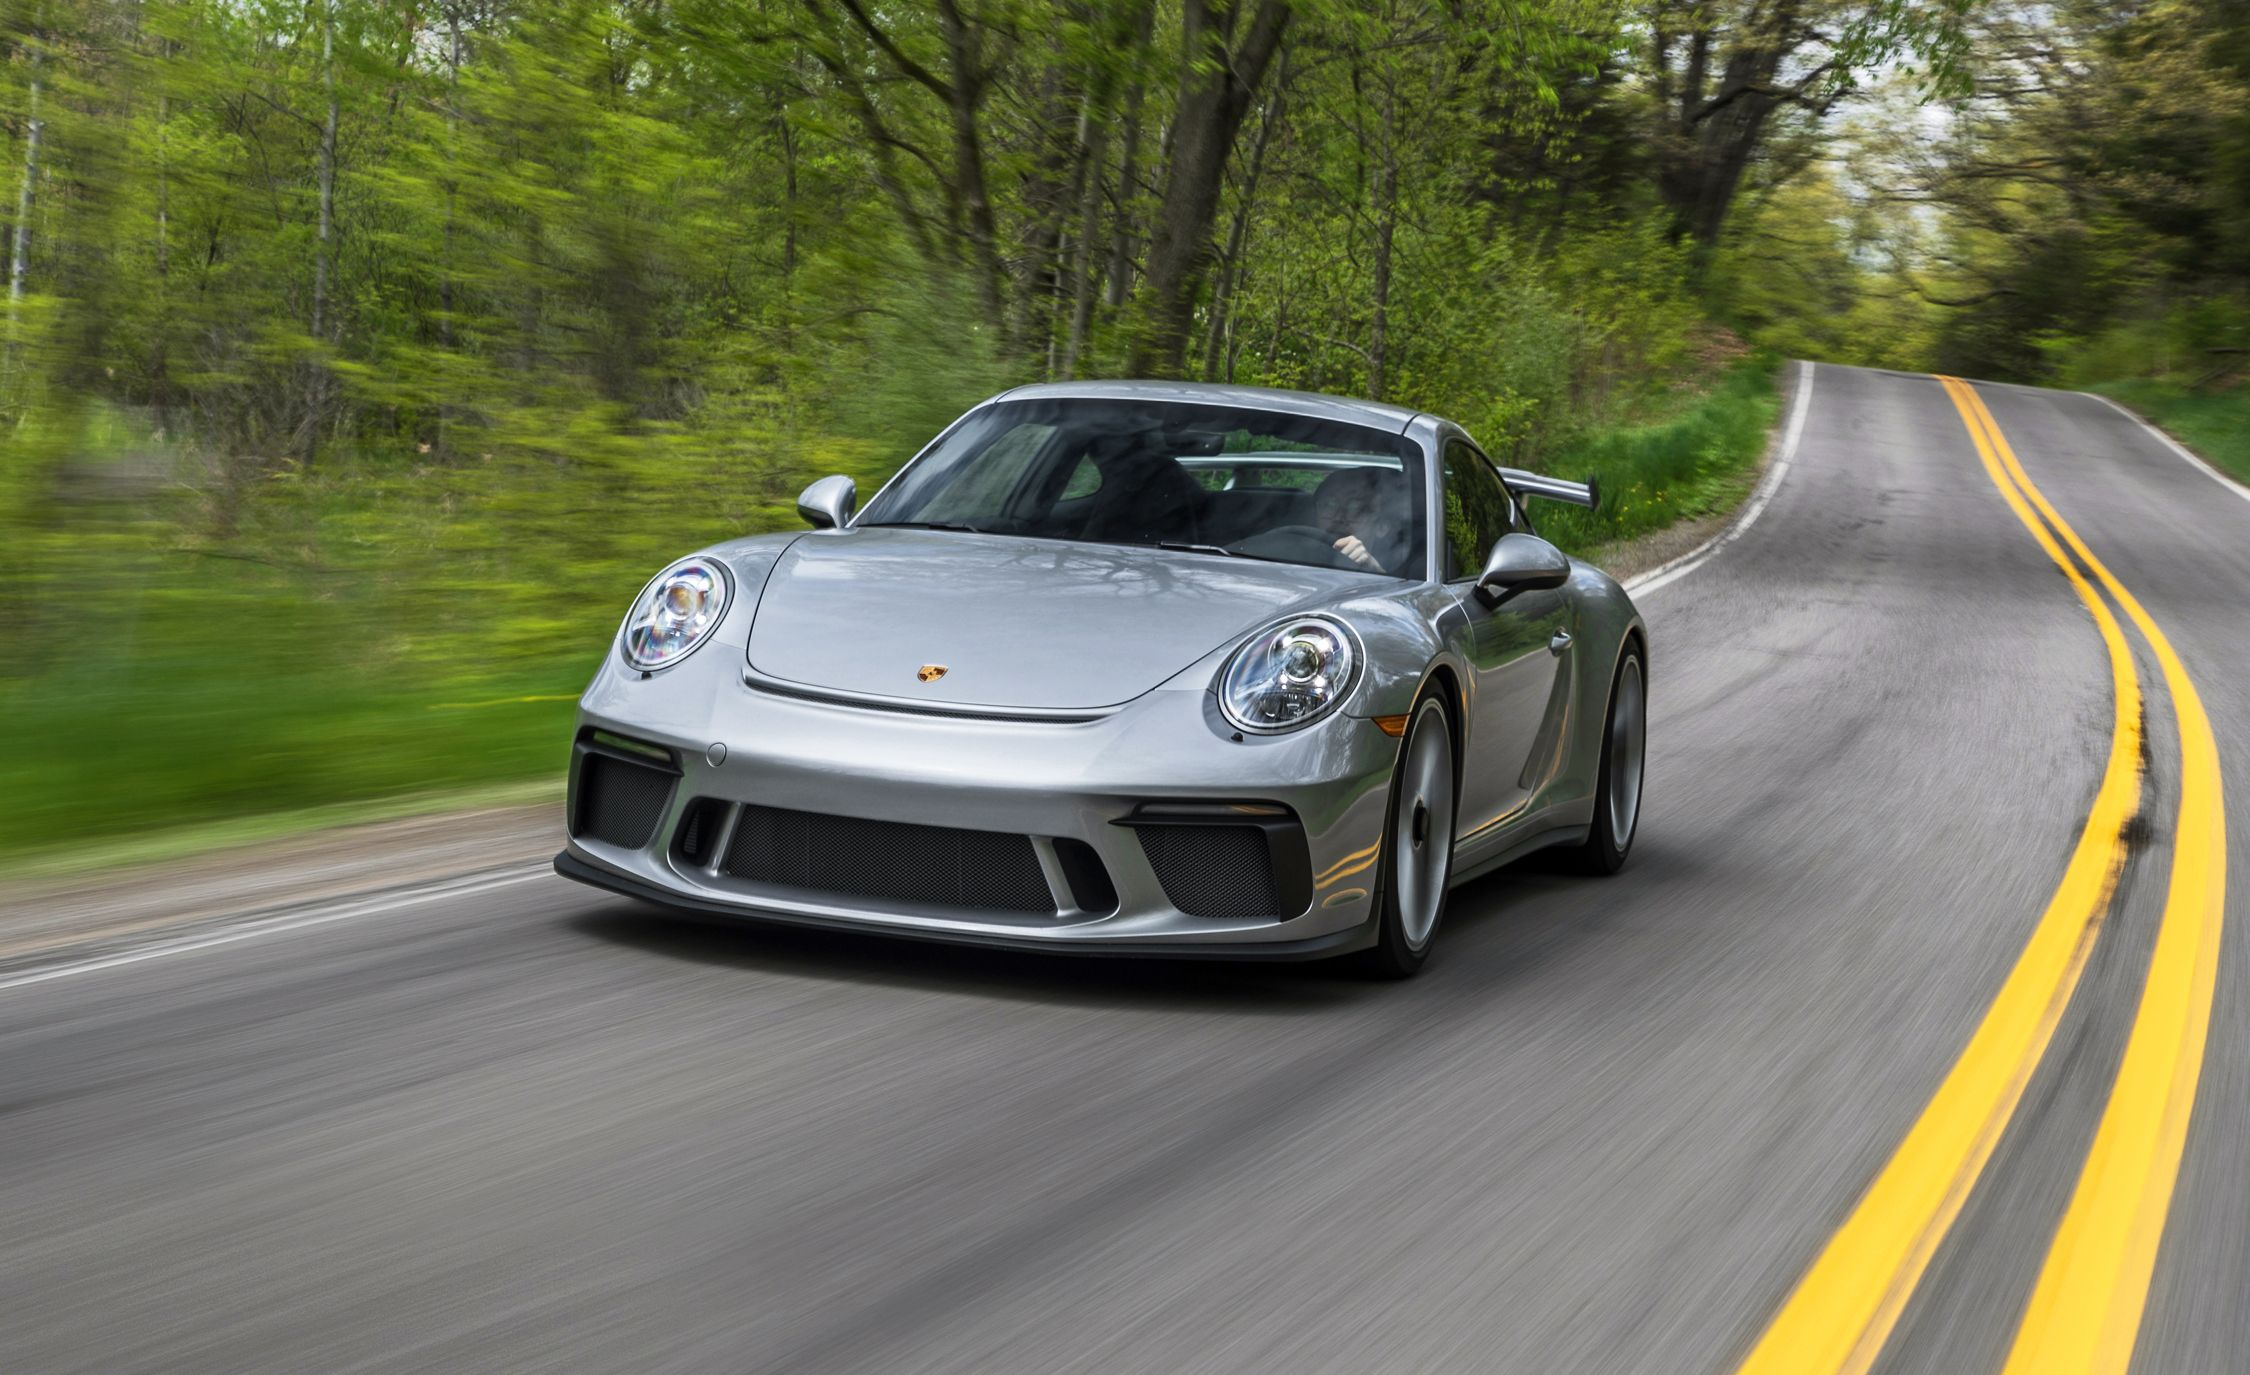 2018 Porsche 911 GT3 Manual Test: Even More Fun with the